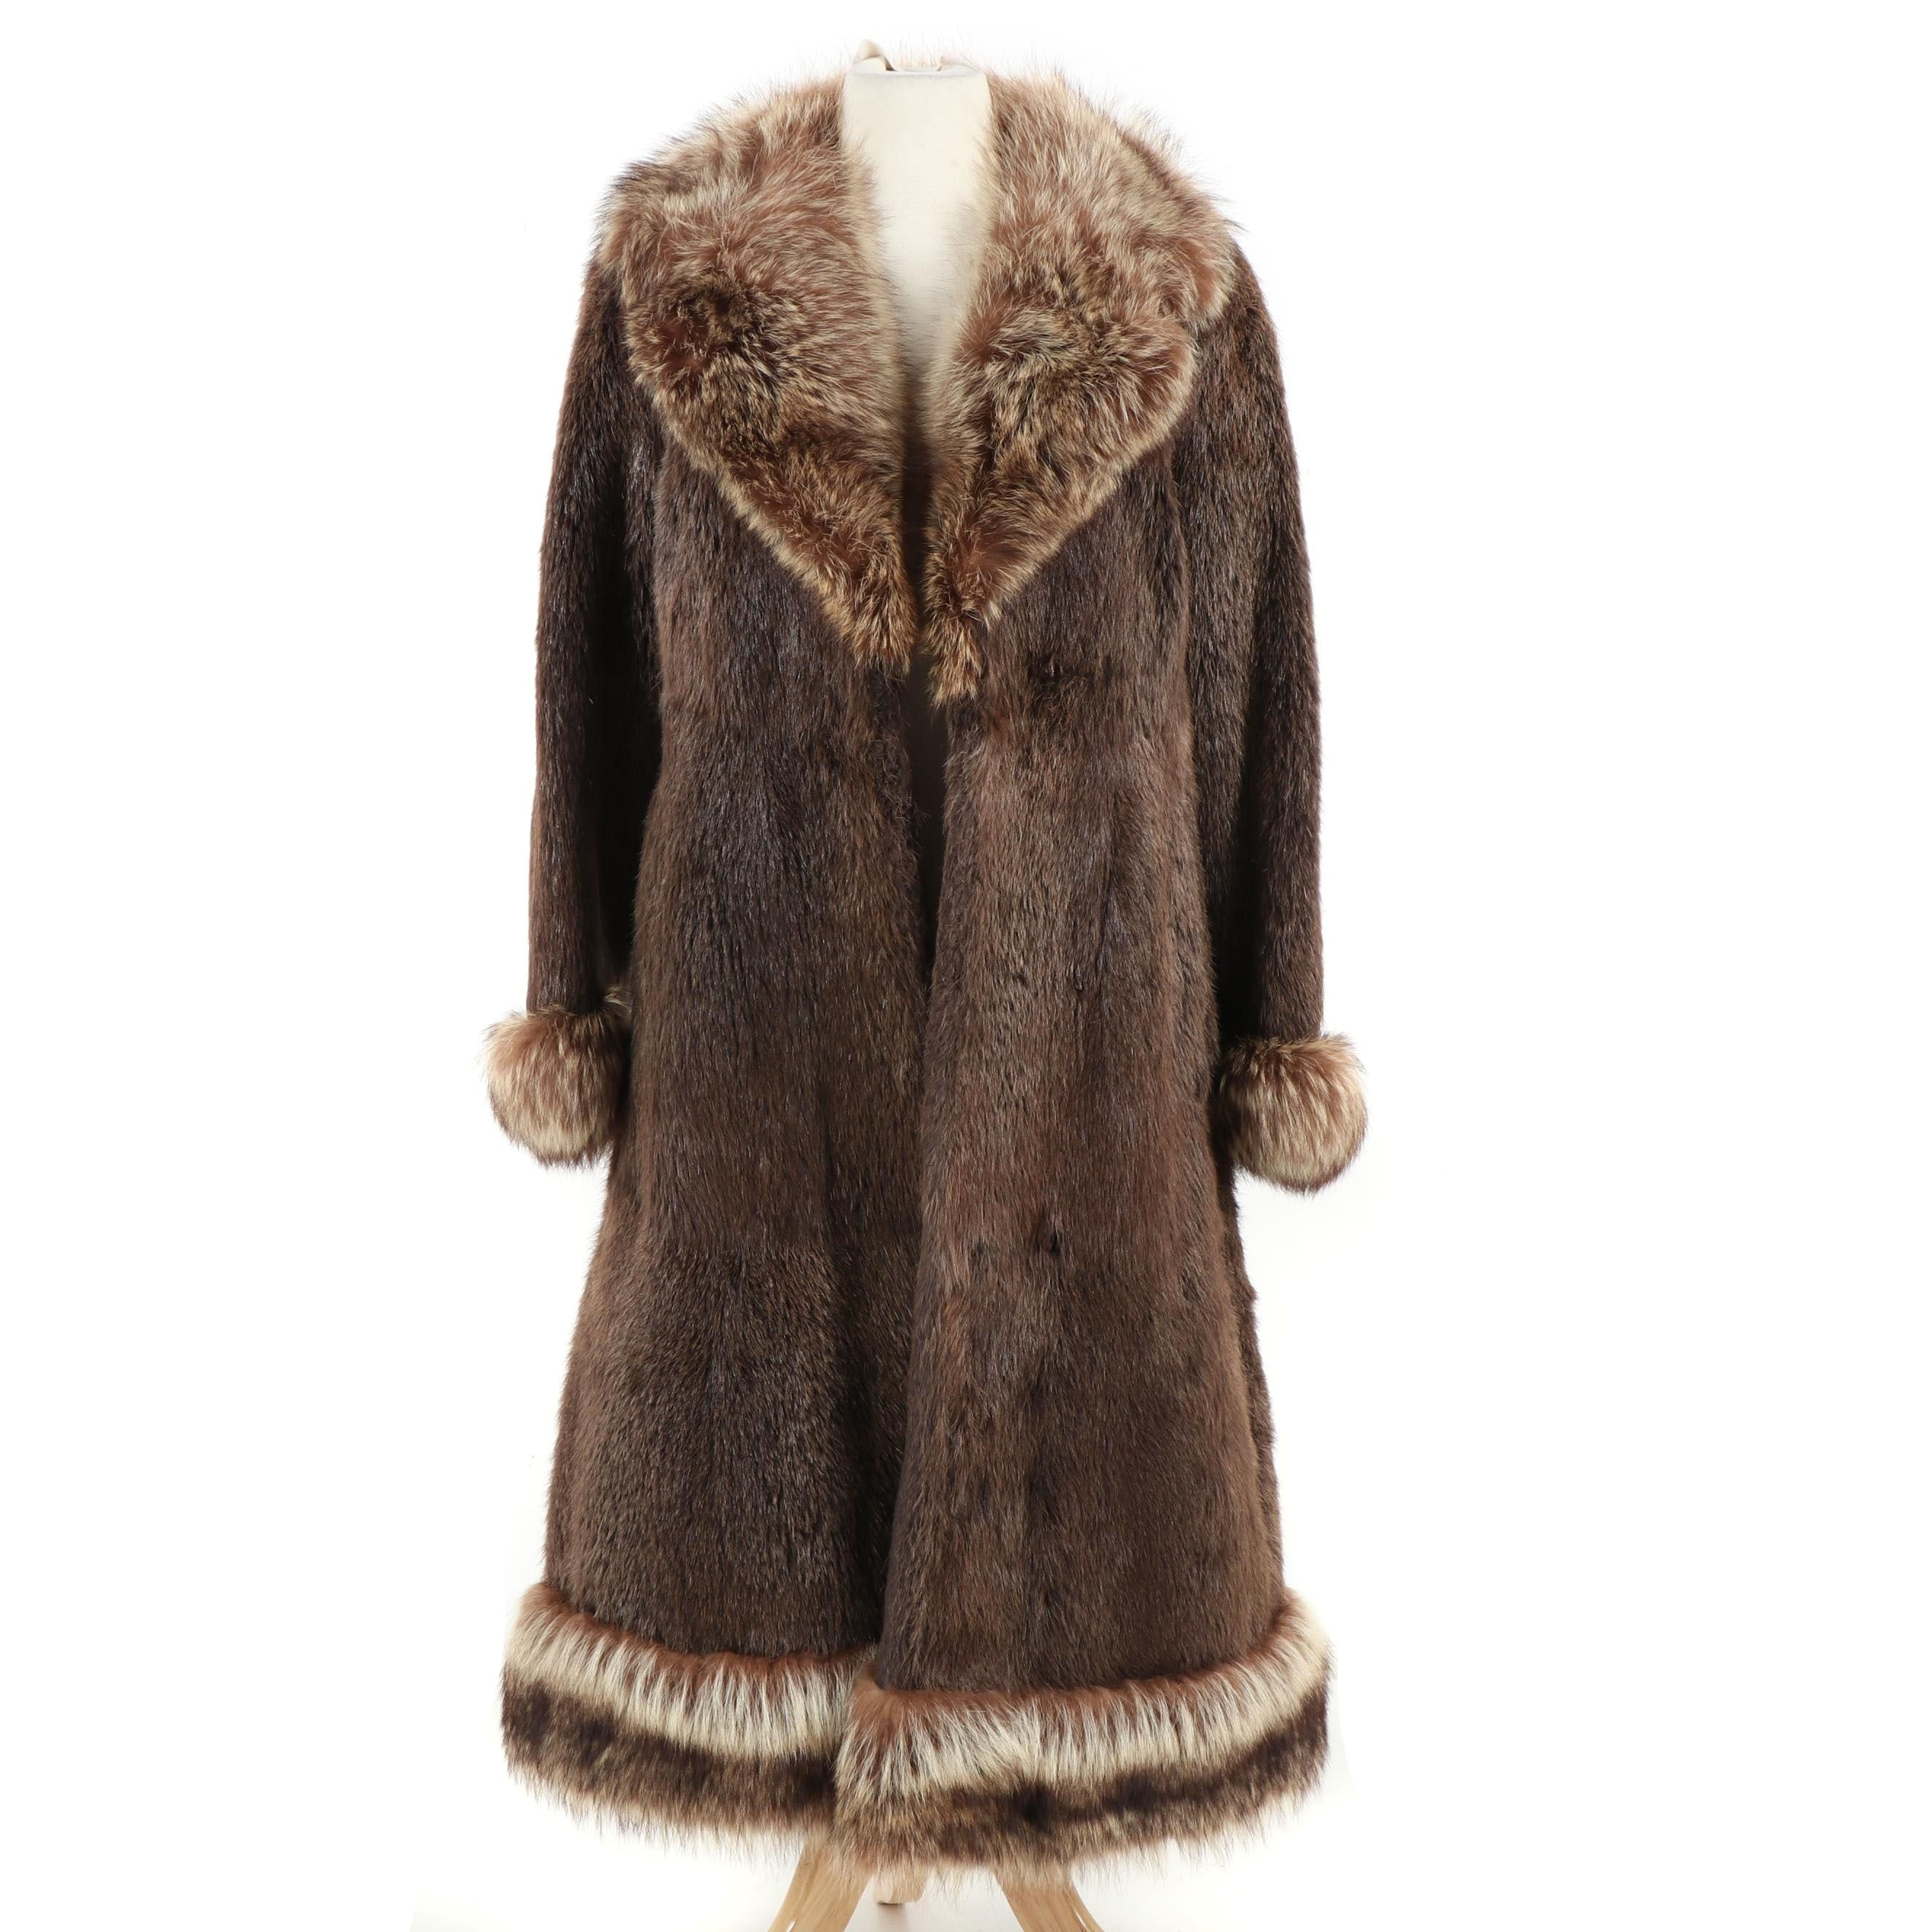 Women's Beaver Fur Coat with Raccoon Fur Trim